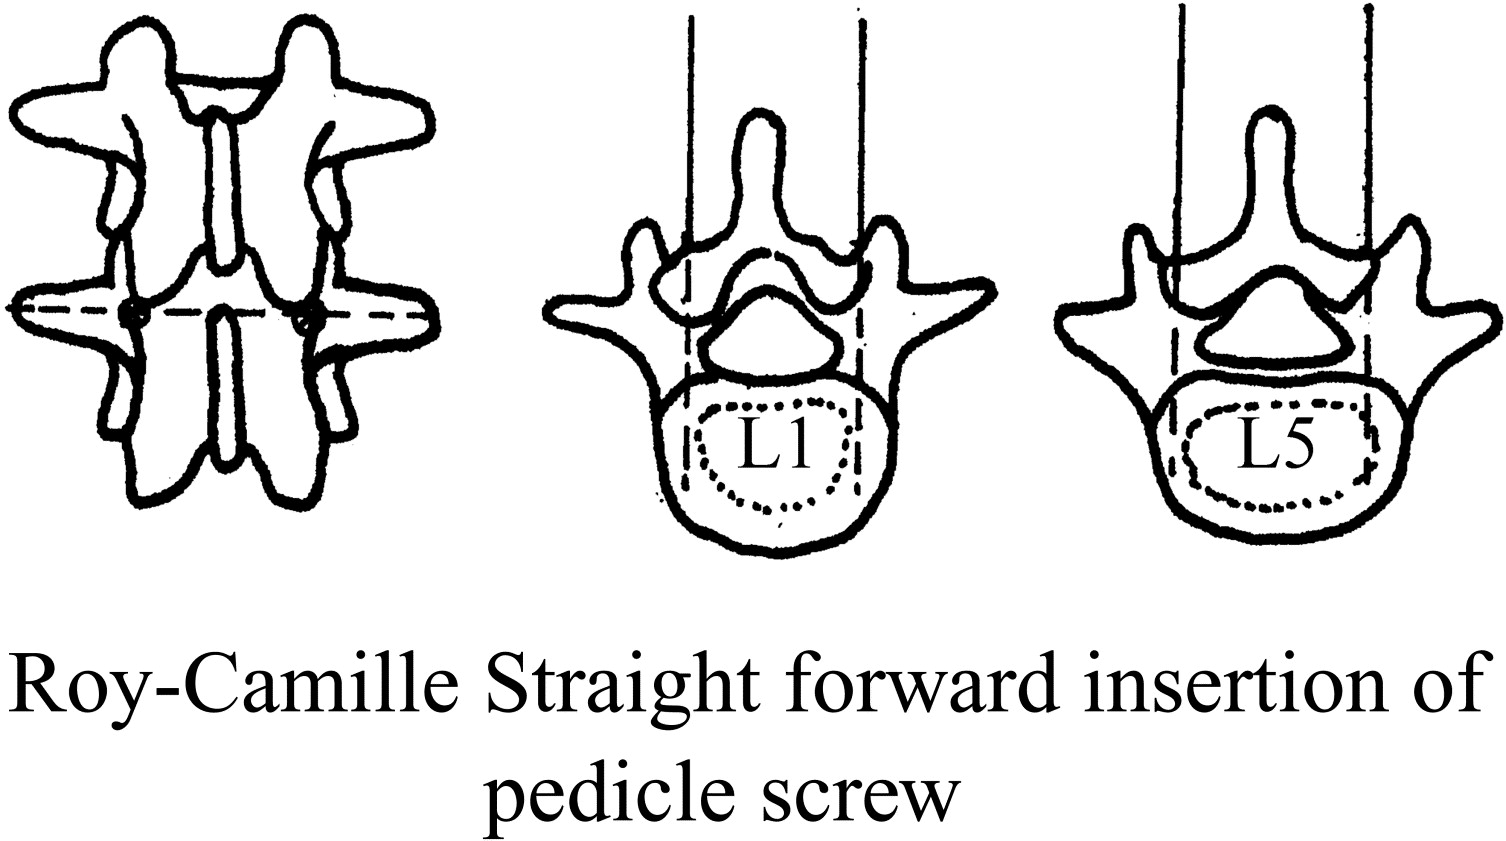 Surgical anatomy of the pelvis, sacrum, and lumbar spine relevant to ...